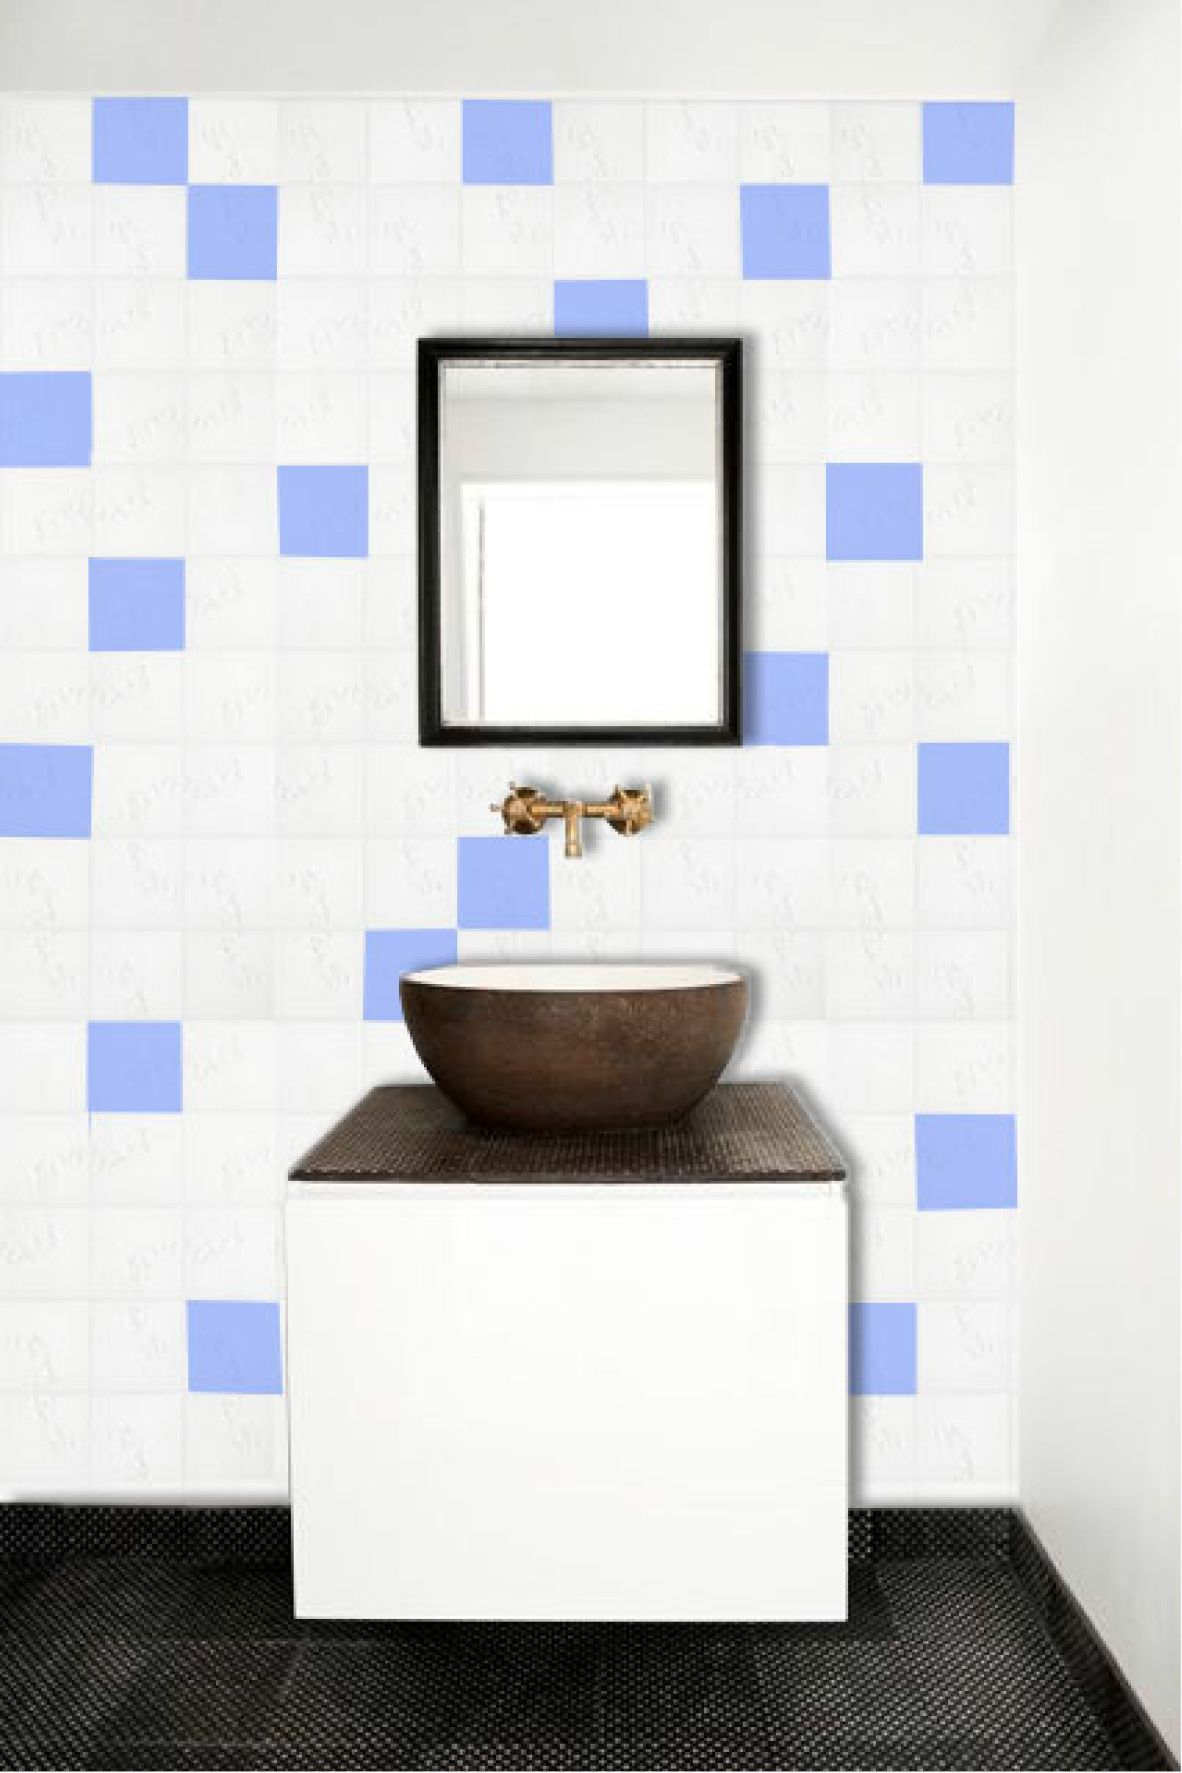 Visualisation of tex-tiles in bathroom with washbasin #tiles #transparant #white #translucent #porcelain #15x15 #bathroom #textiles #wall #decoration #led #imprint #relief #barbaravos #wallcovering #kitchen #shower #home #interior #design #glaze #backsplash #flower #pattern #coral #fabric